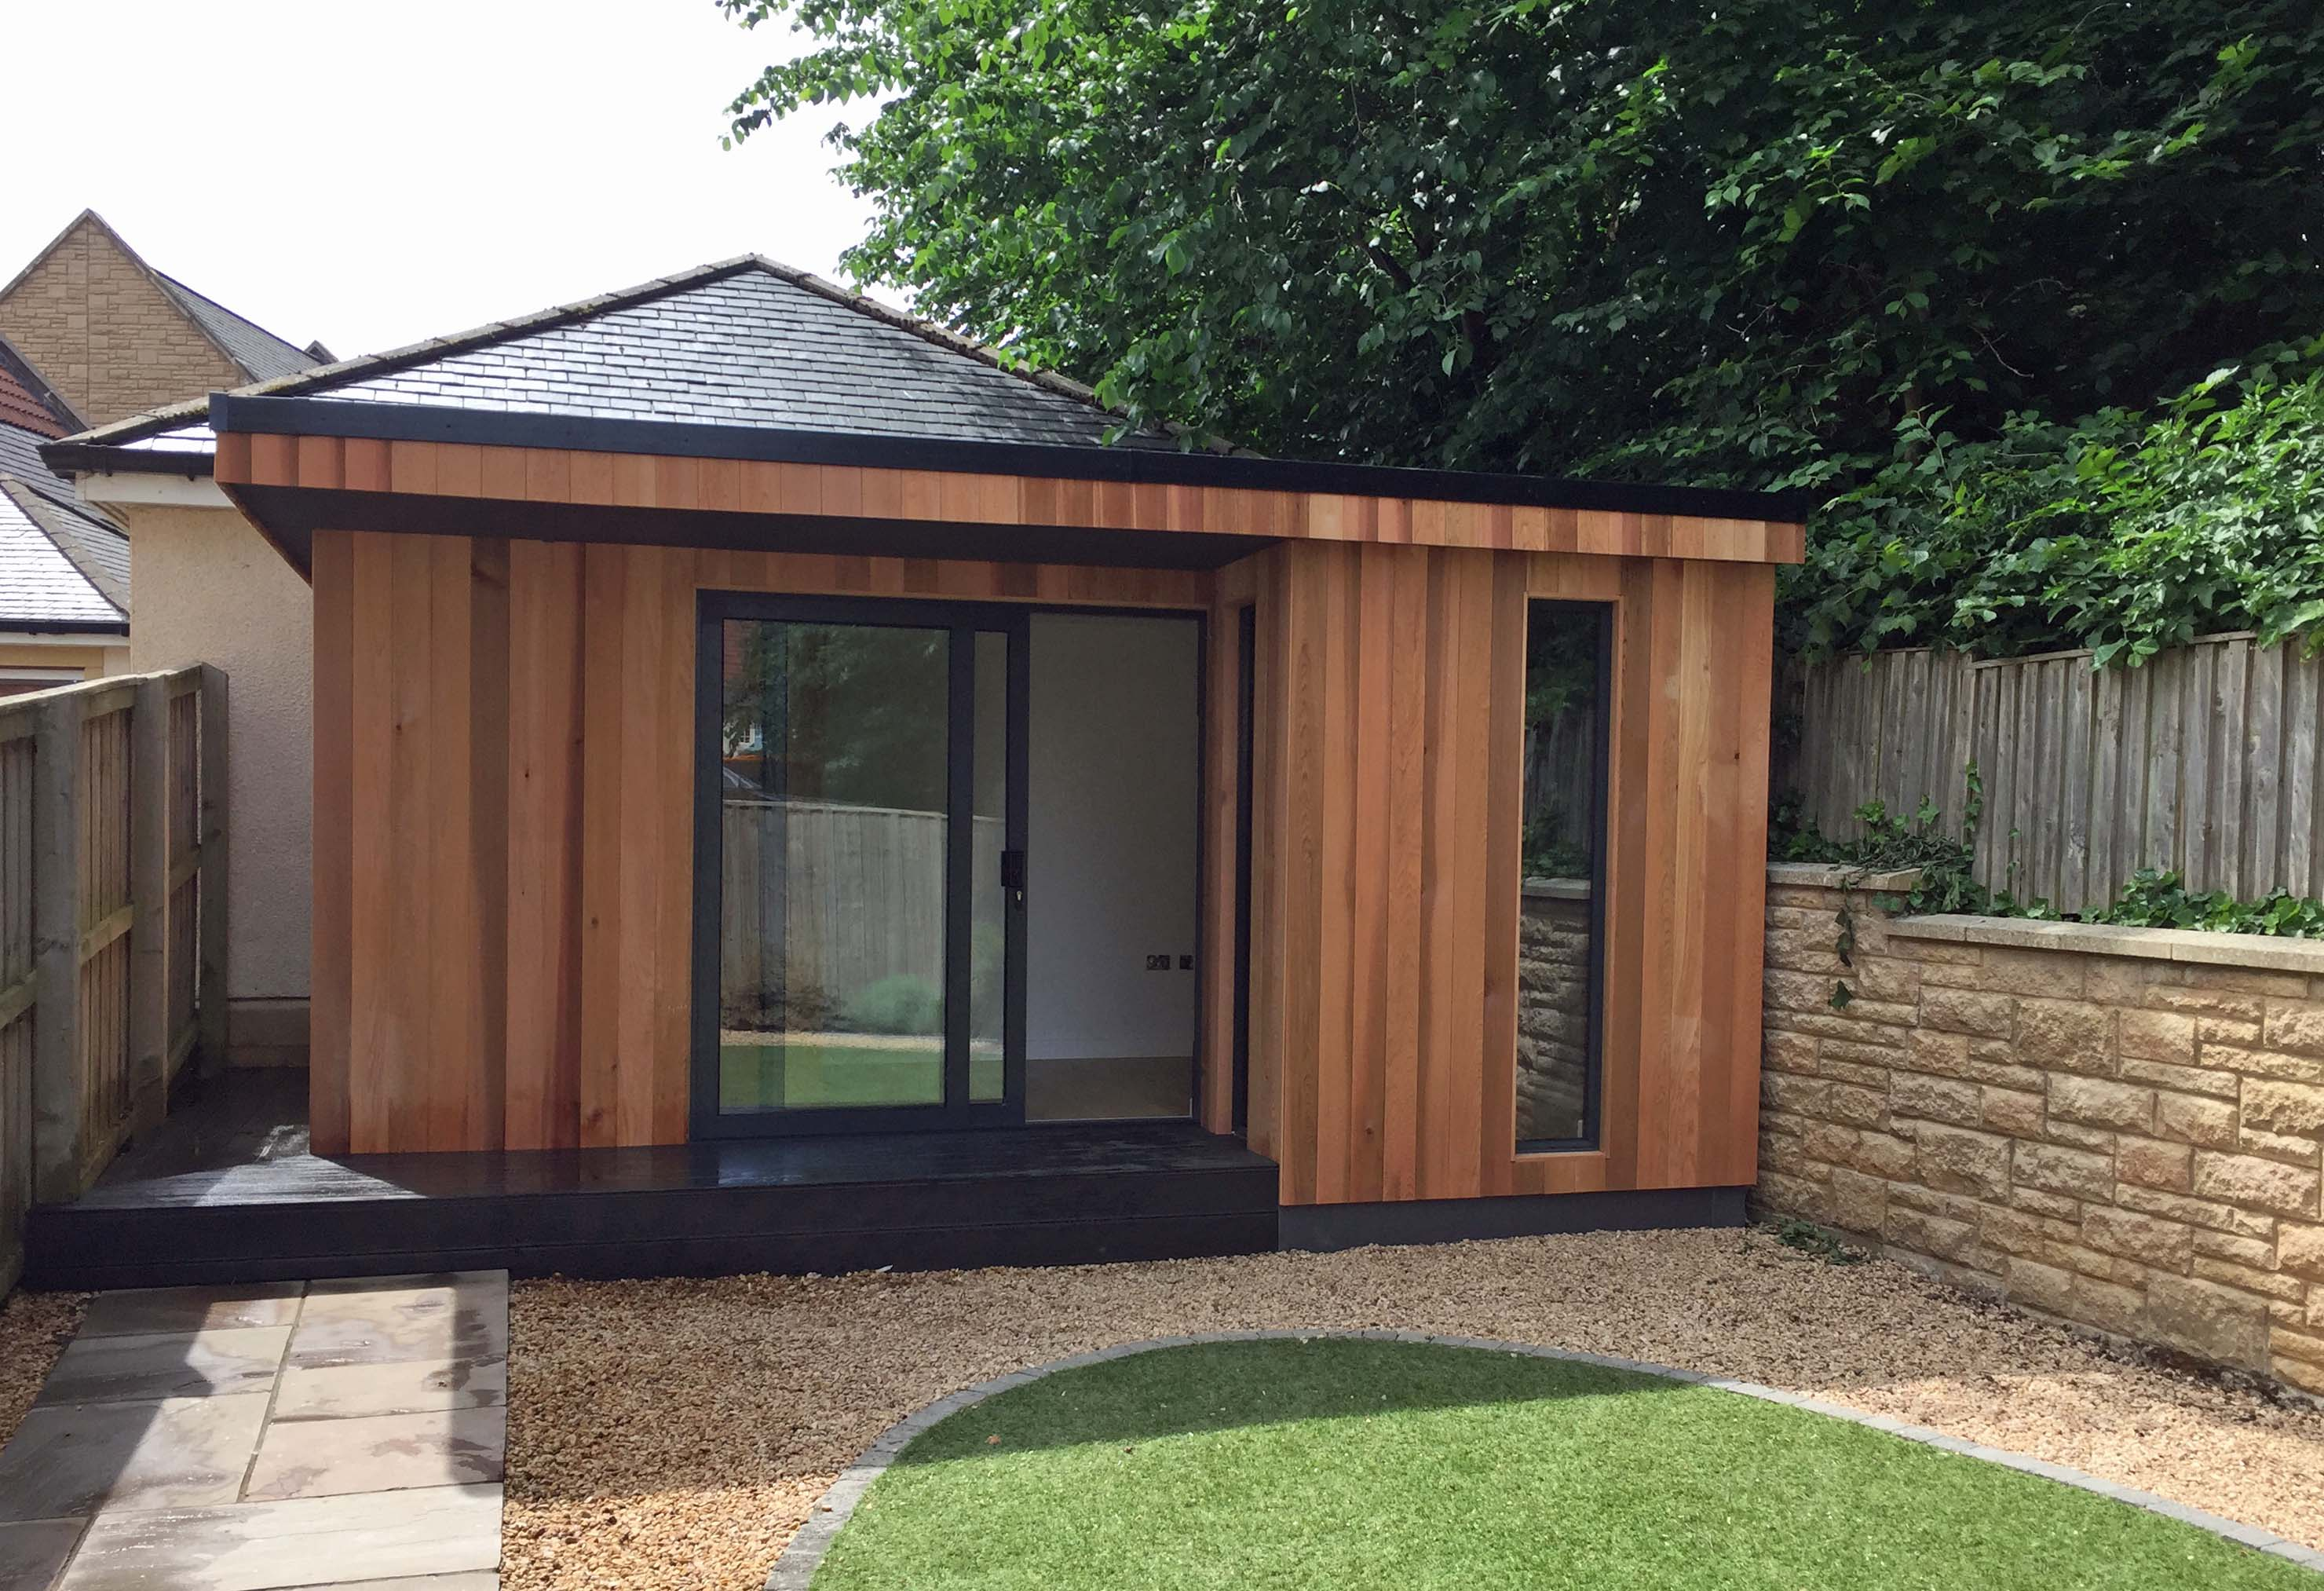 Garden-office-pod-from-modular-sips